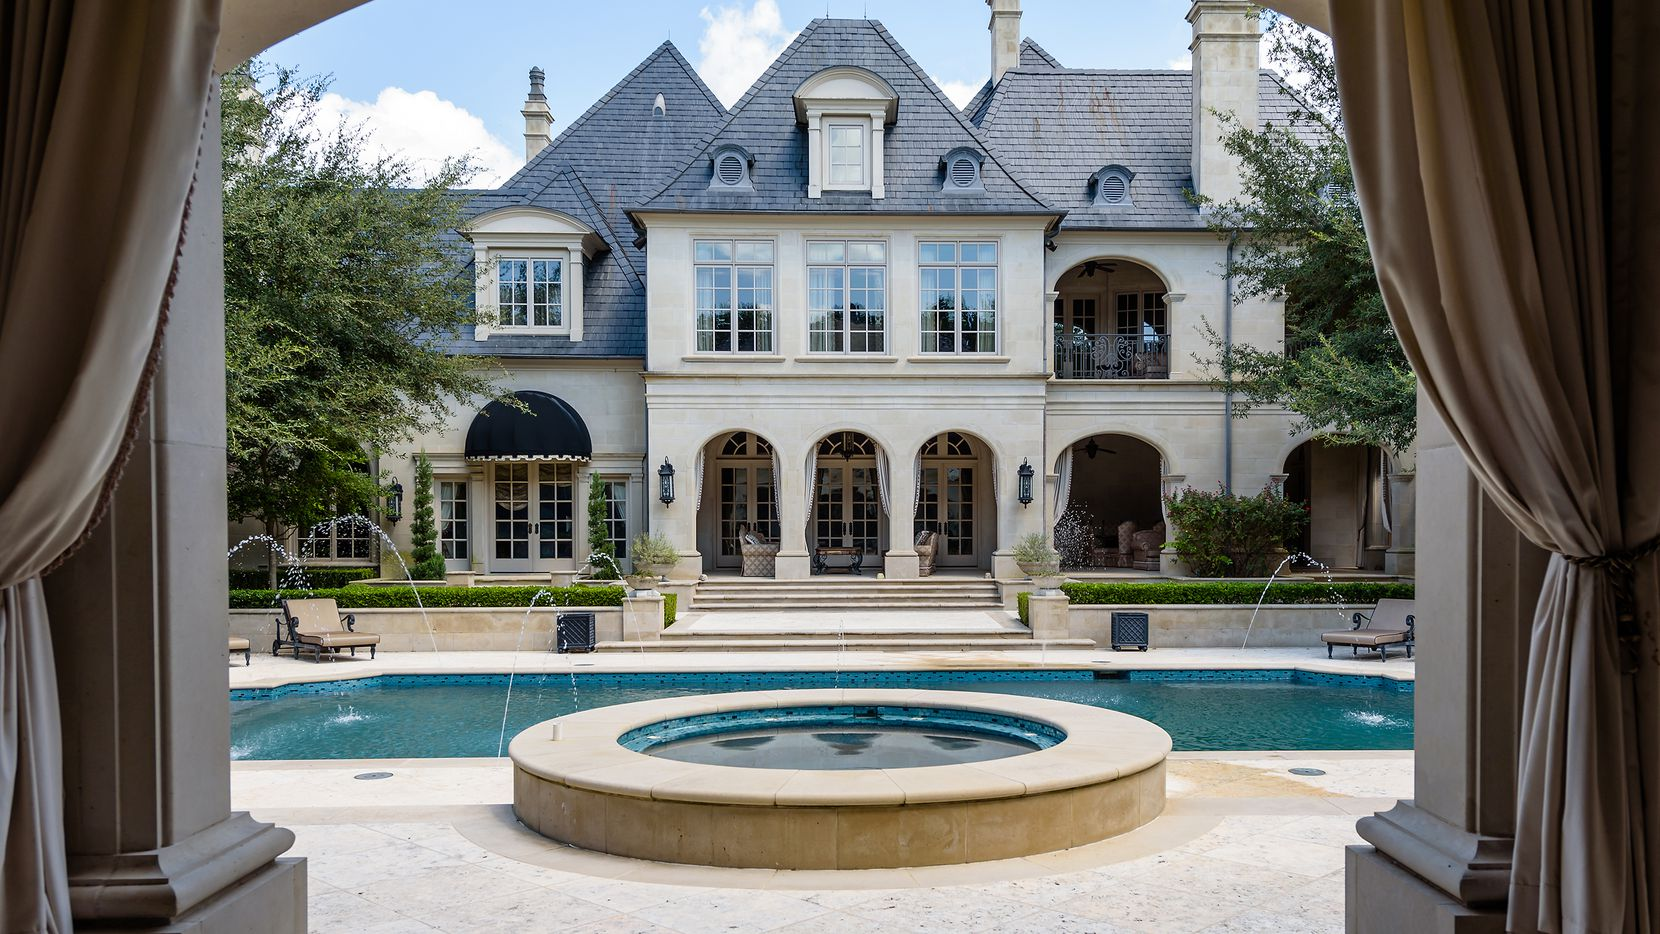 The 10-bedroom home at 10711 Strait Lane in North Dallas has 37,000 square feet.